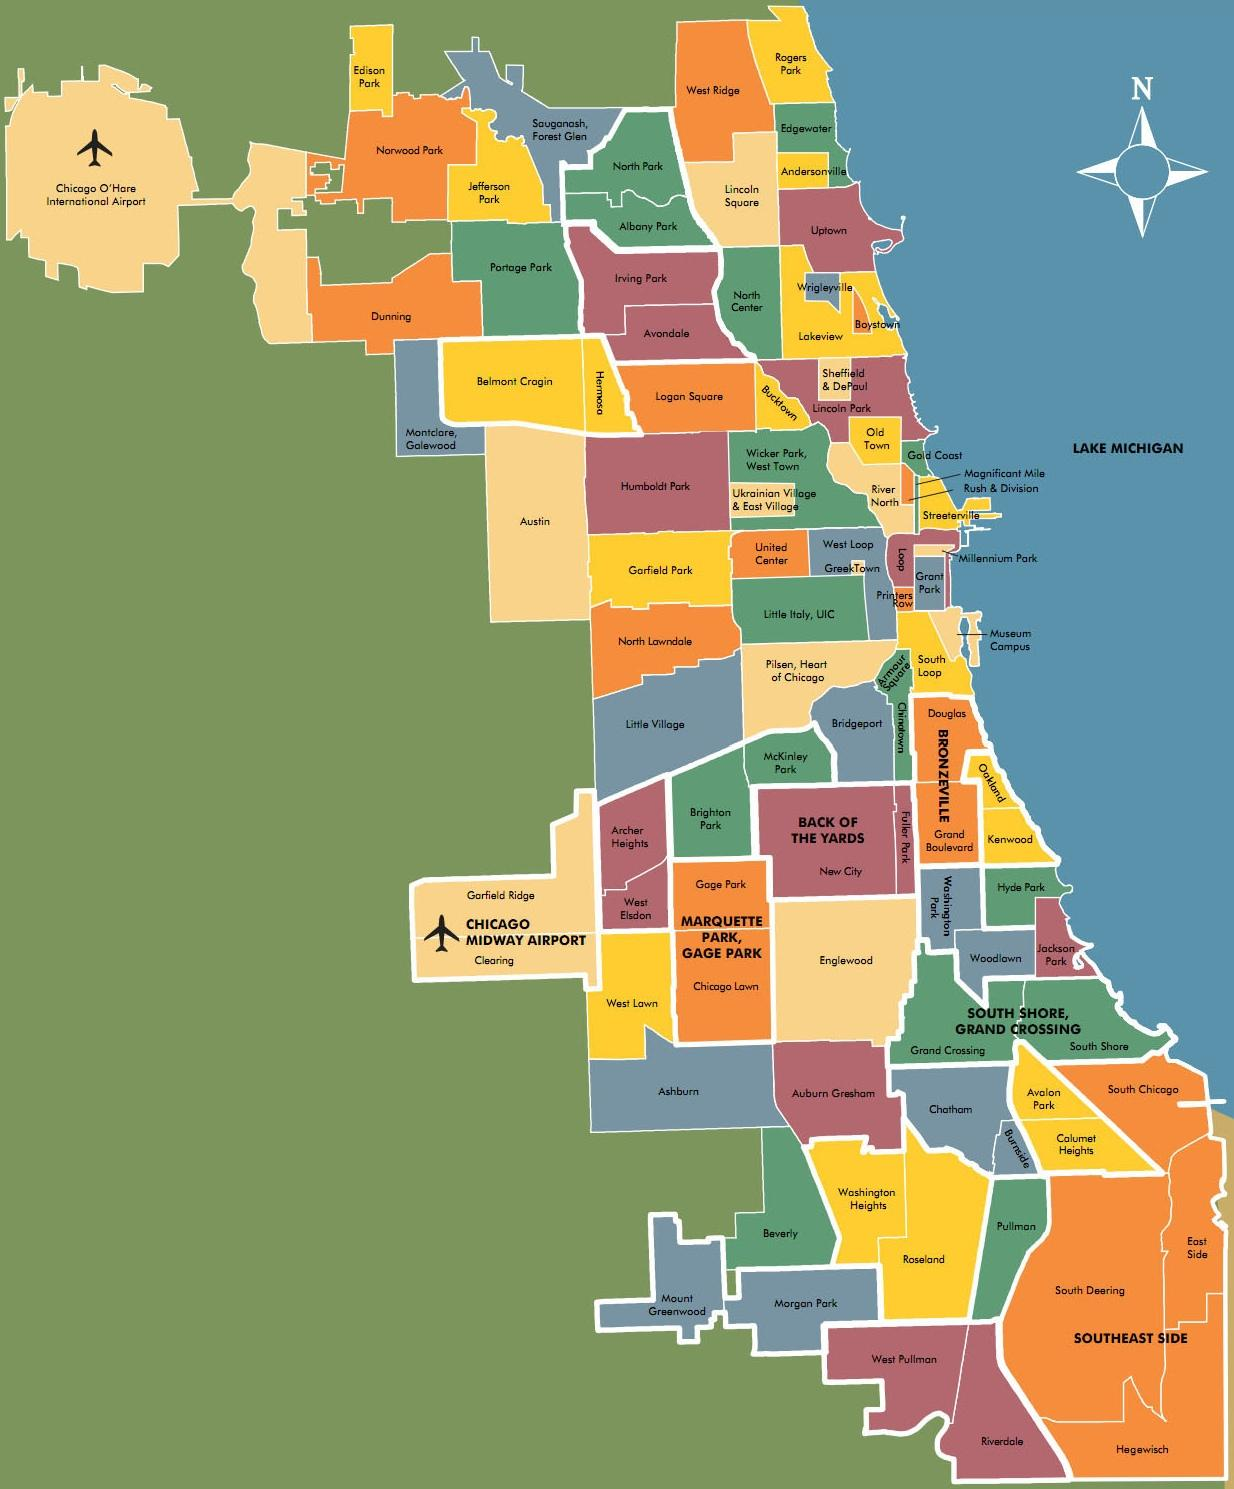 Chicago neighborhood map, Limo Service to Chicago Neighborhoods, The Loop, Gold Coast, Streeterville, Wicker Park, Lincoln Park, Old Town, River North, Lakeview